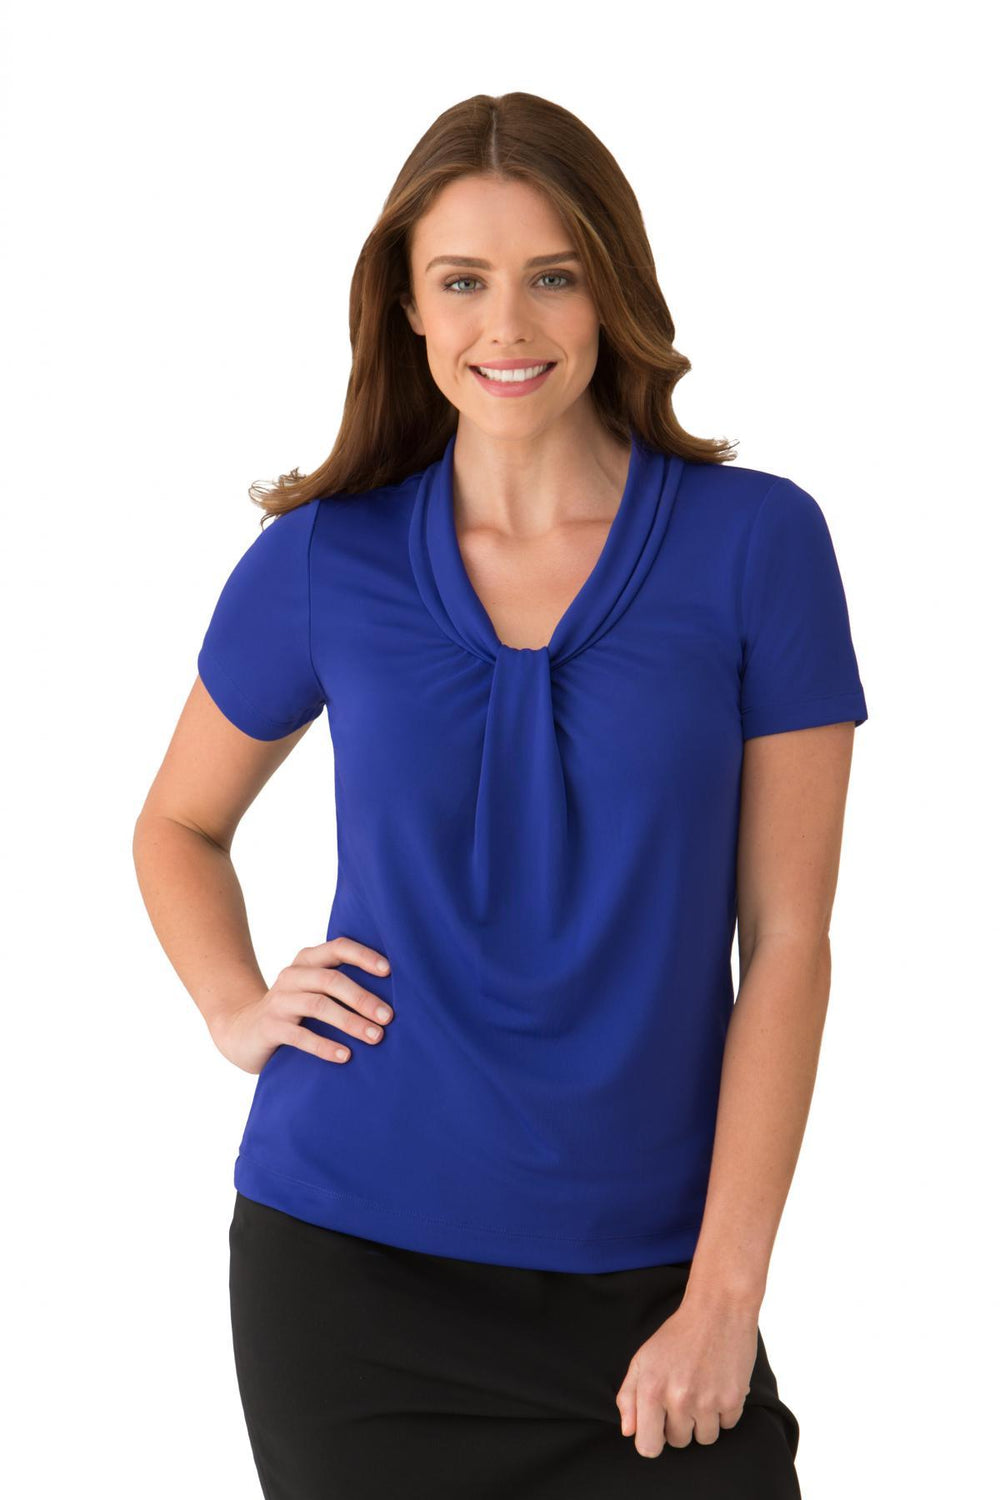 Pippa Knit Top Short Sleeve